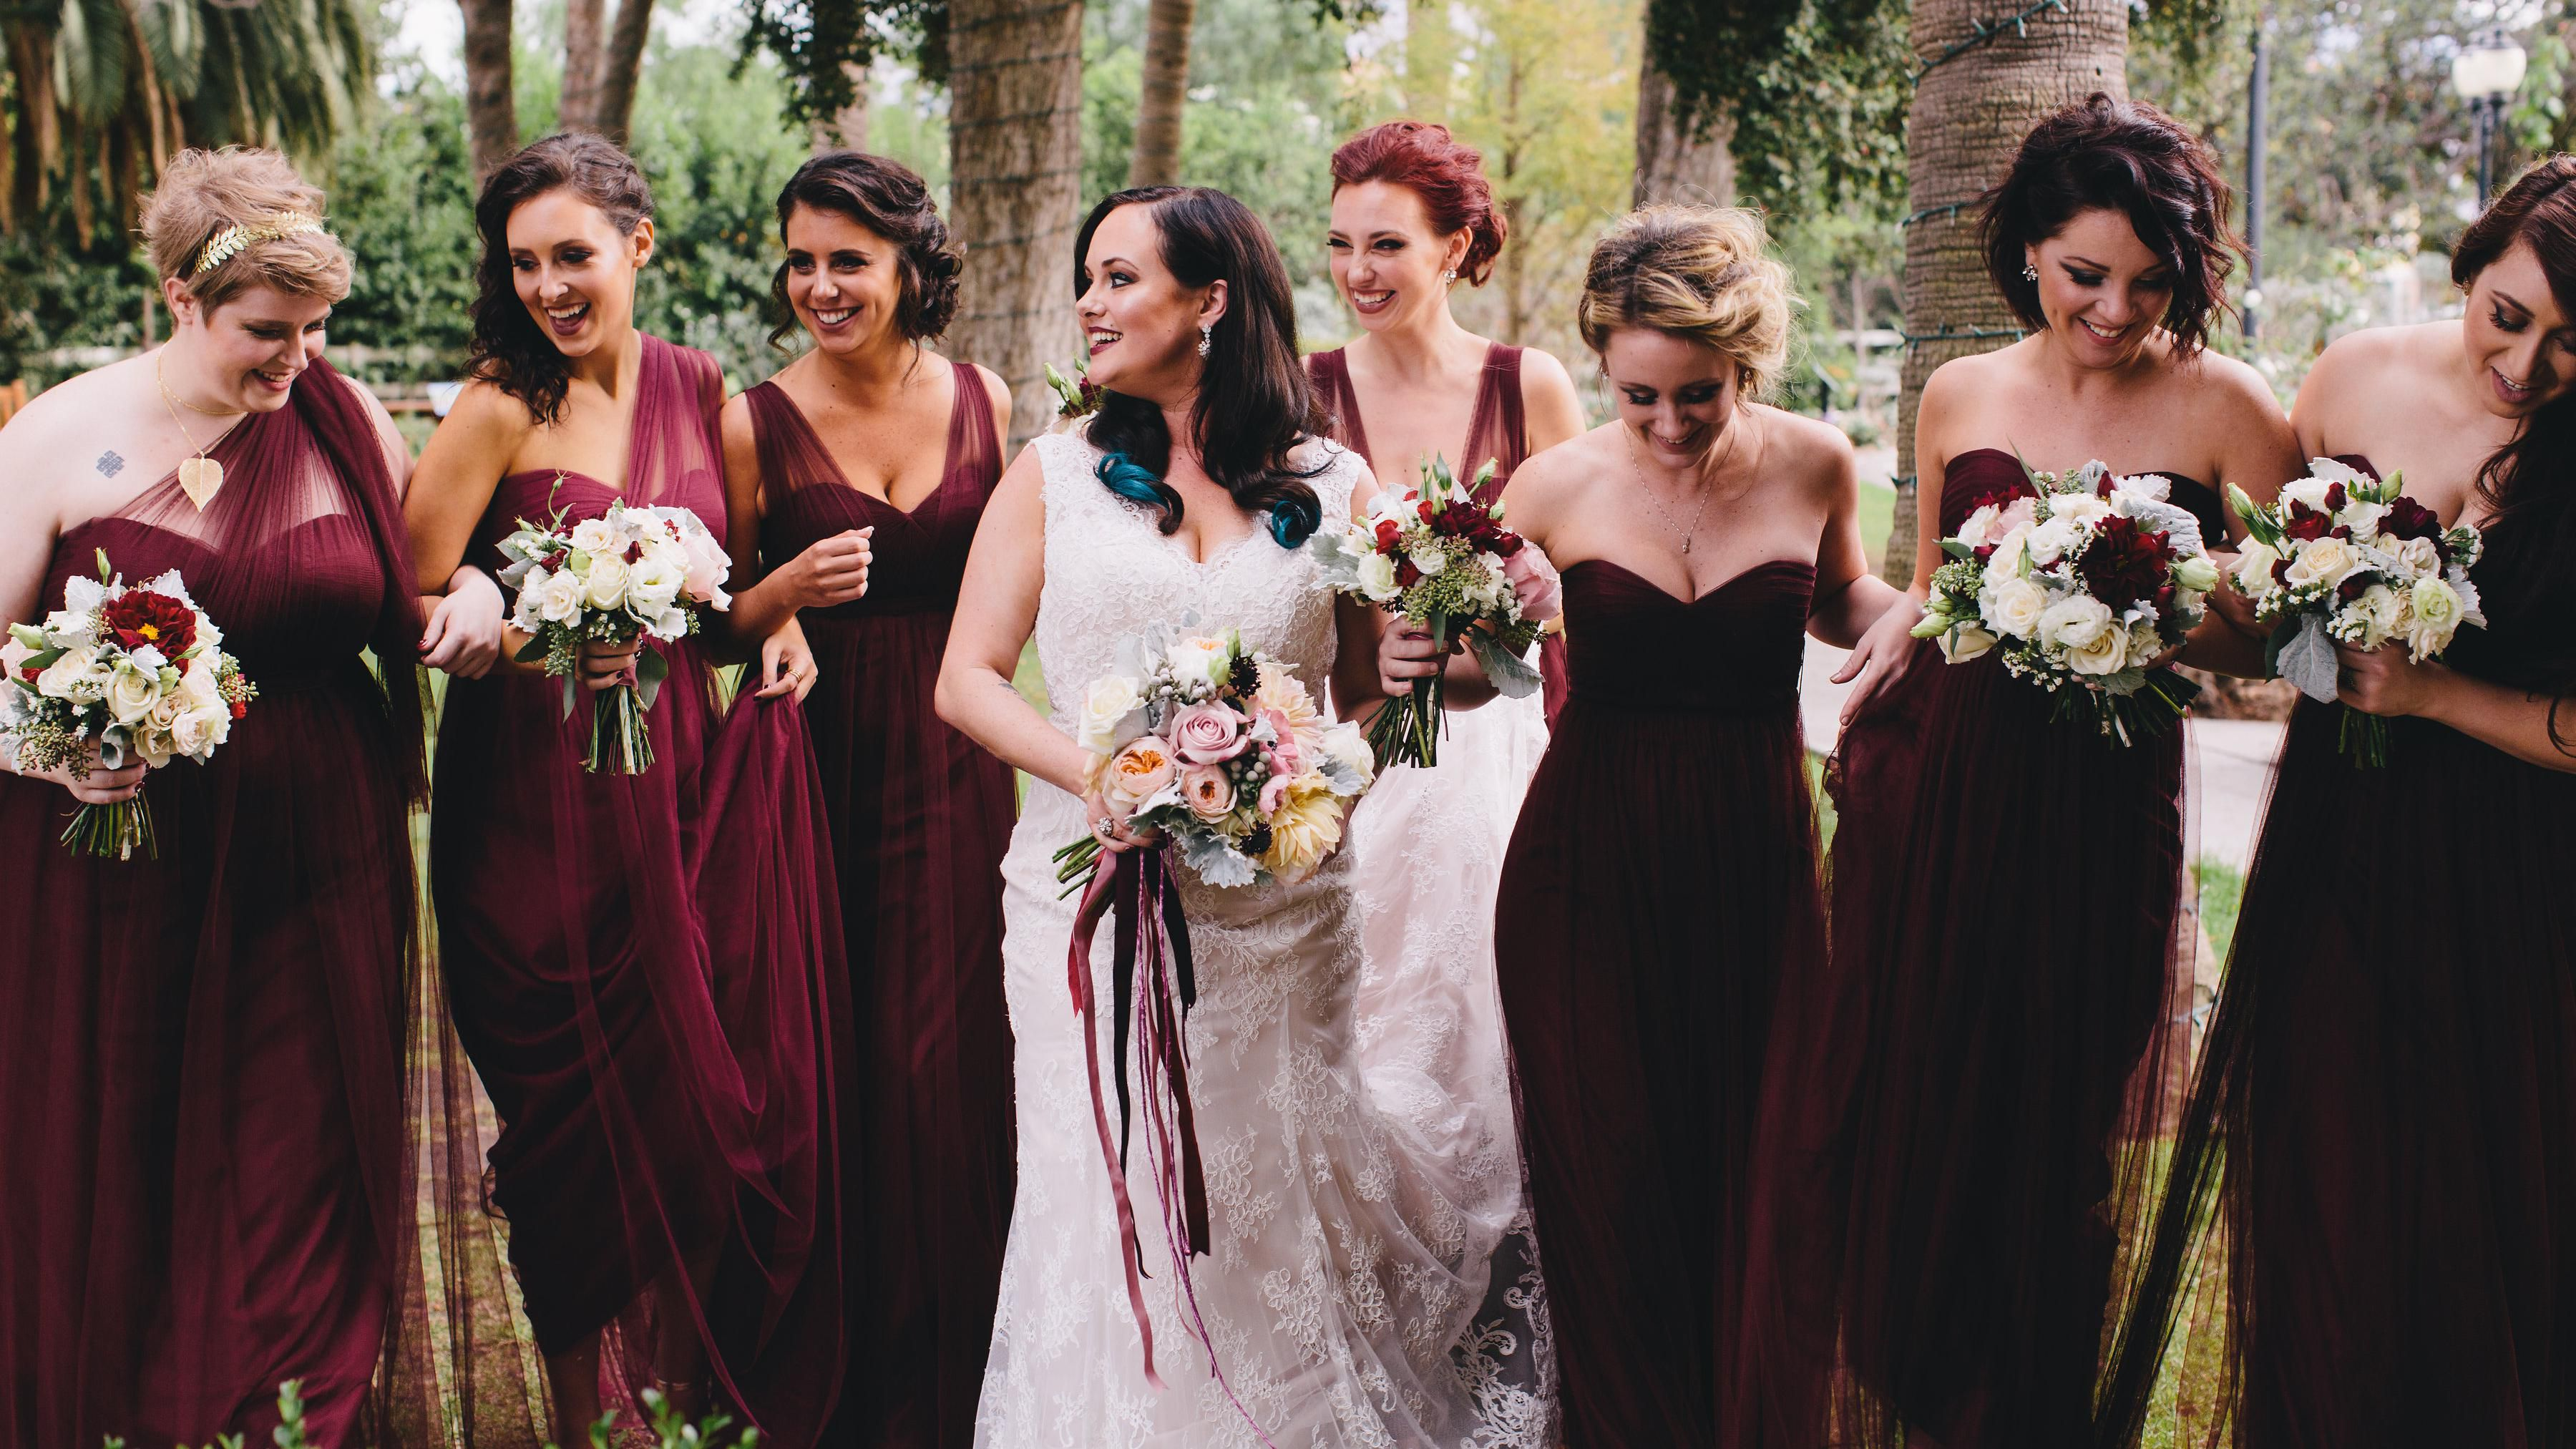 7 Feminist Alternatives To Outdated And Patriarchal Wedding